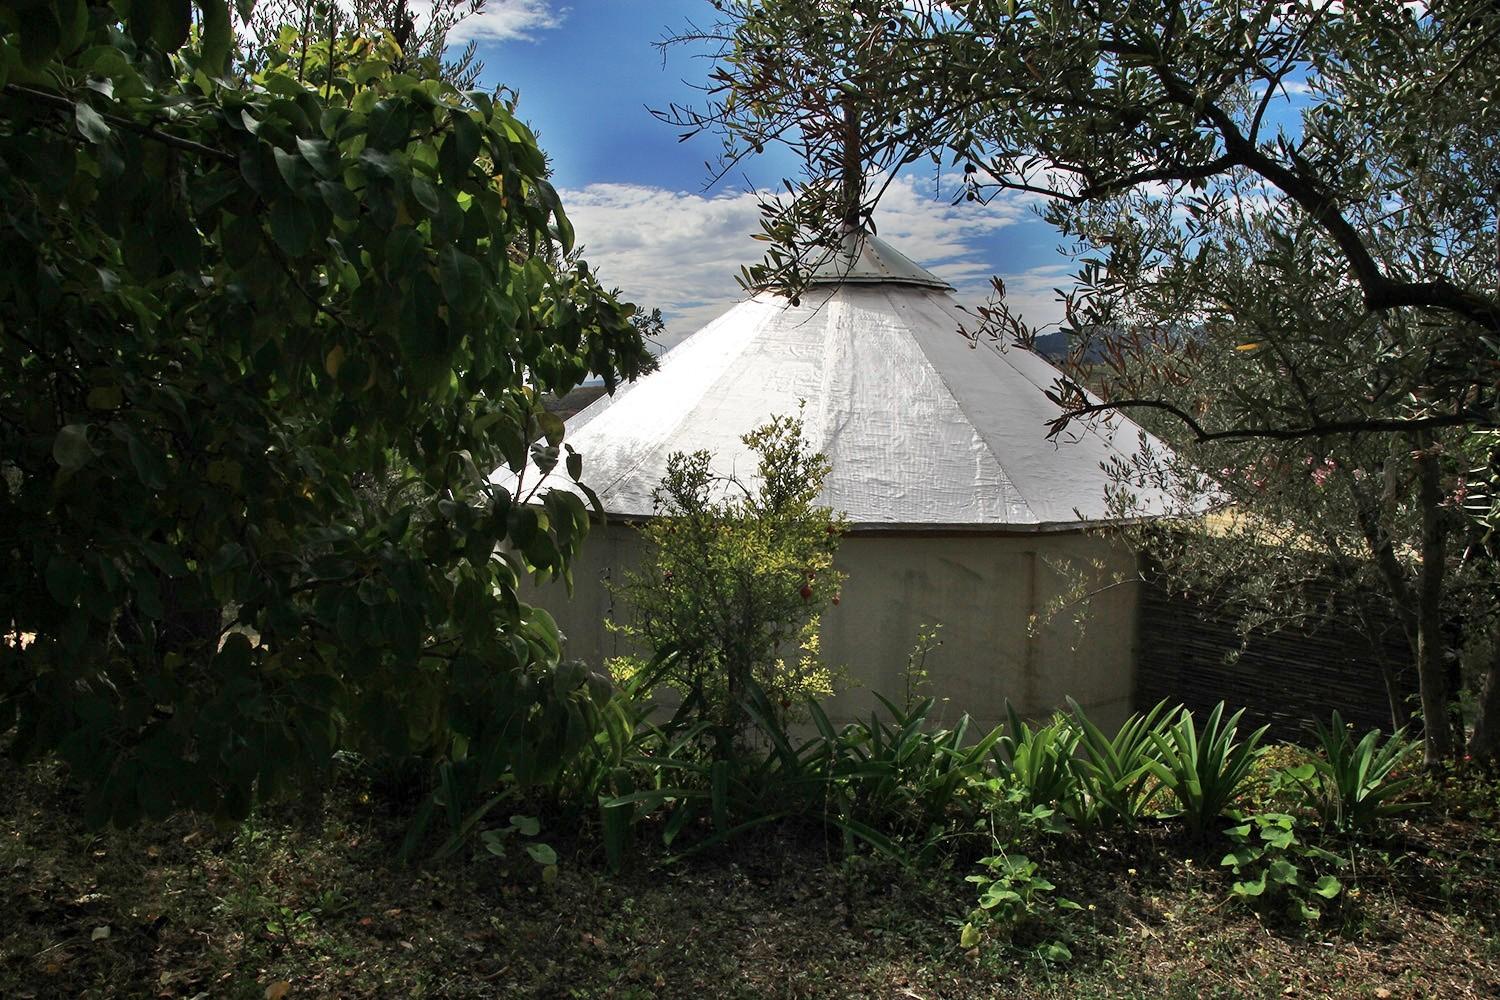 View on the small Yurt from the entrance